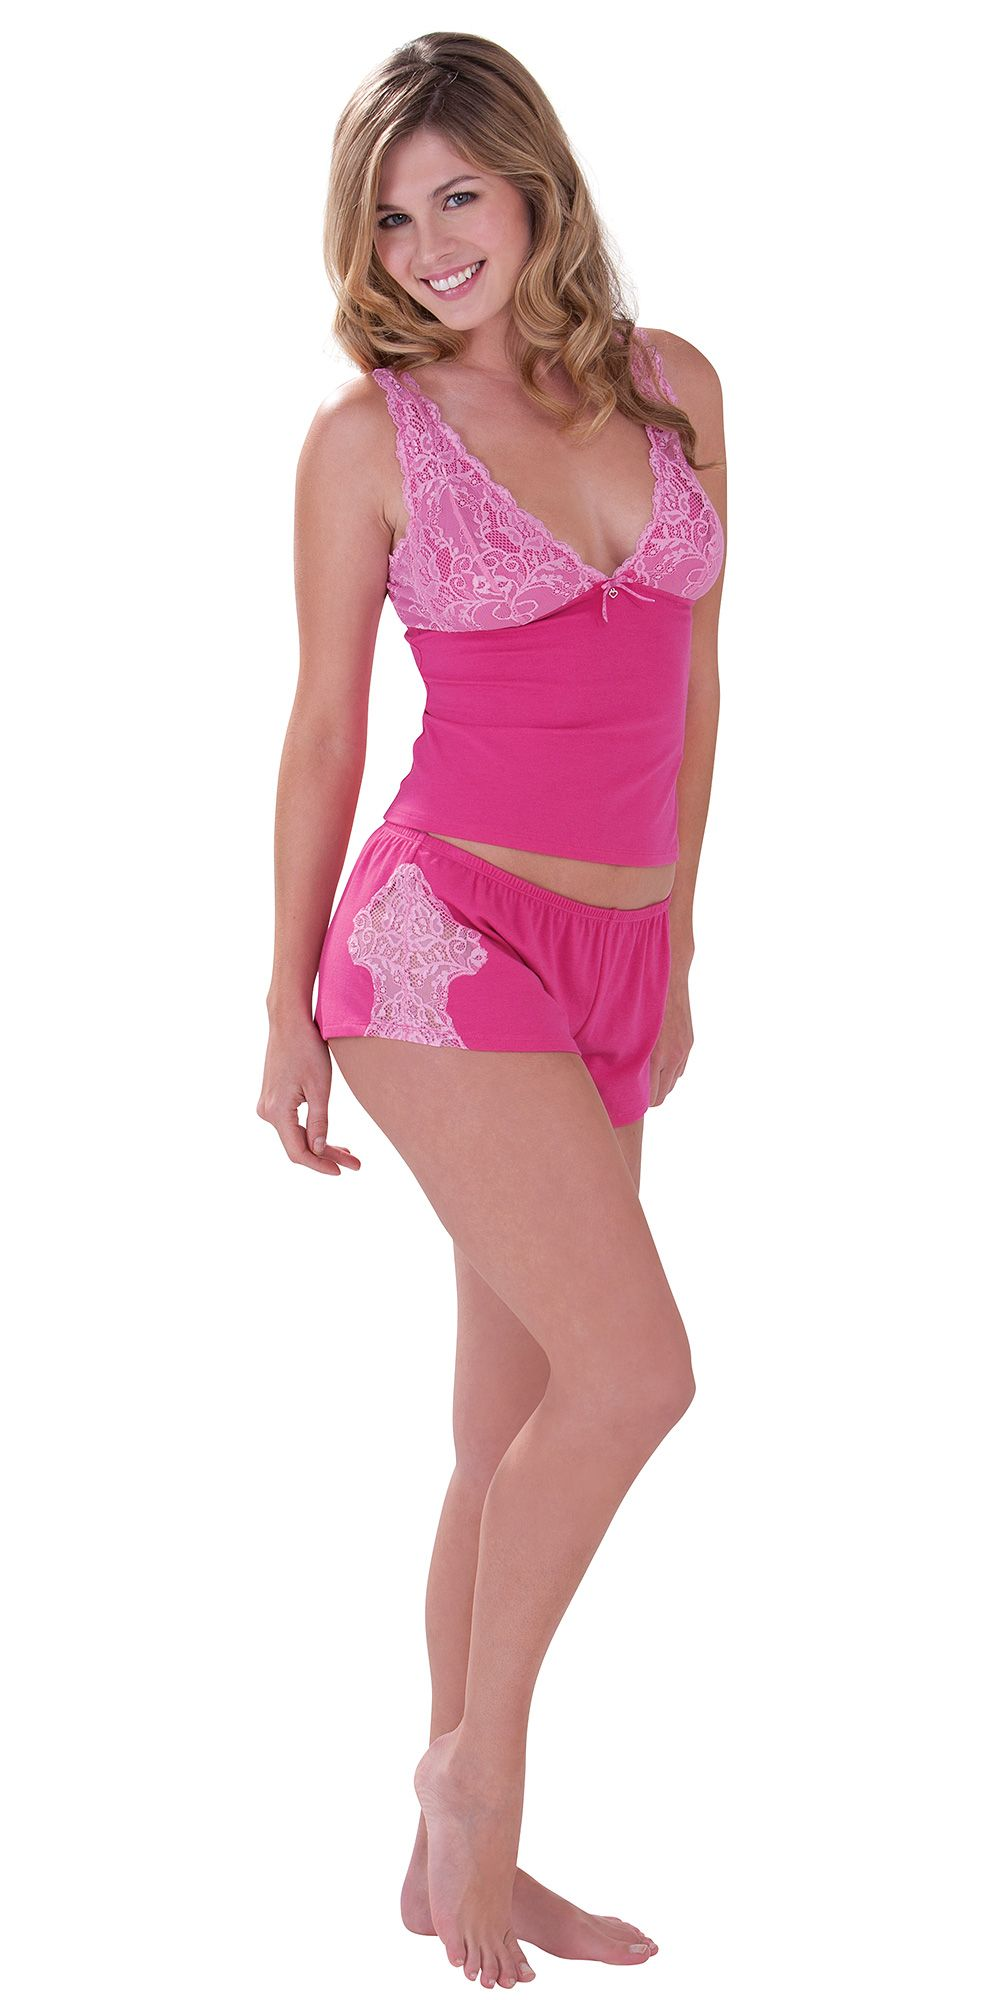 97d236240f22 Hot Pink Lacey Short Set - Pajamas from PajamaGram.  79.99  Flirty  Pajamas